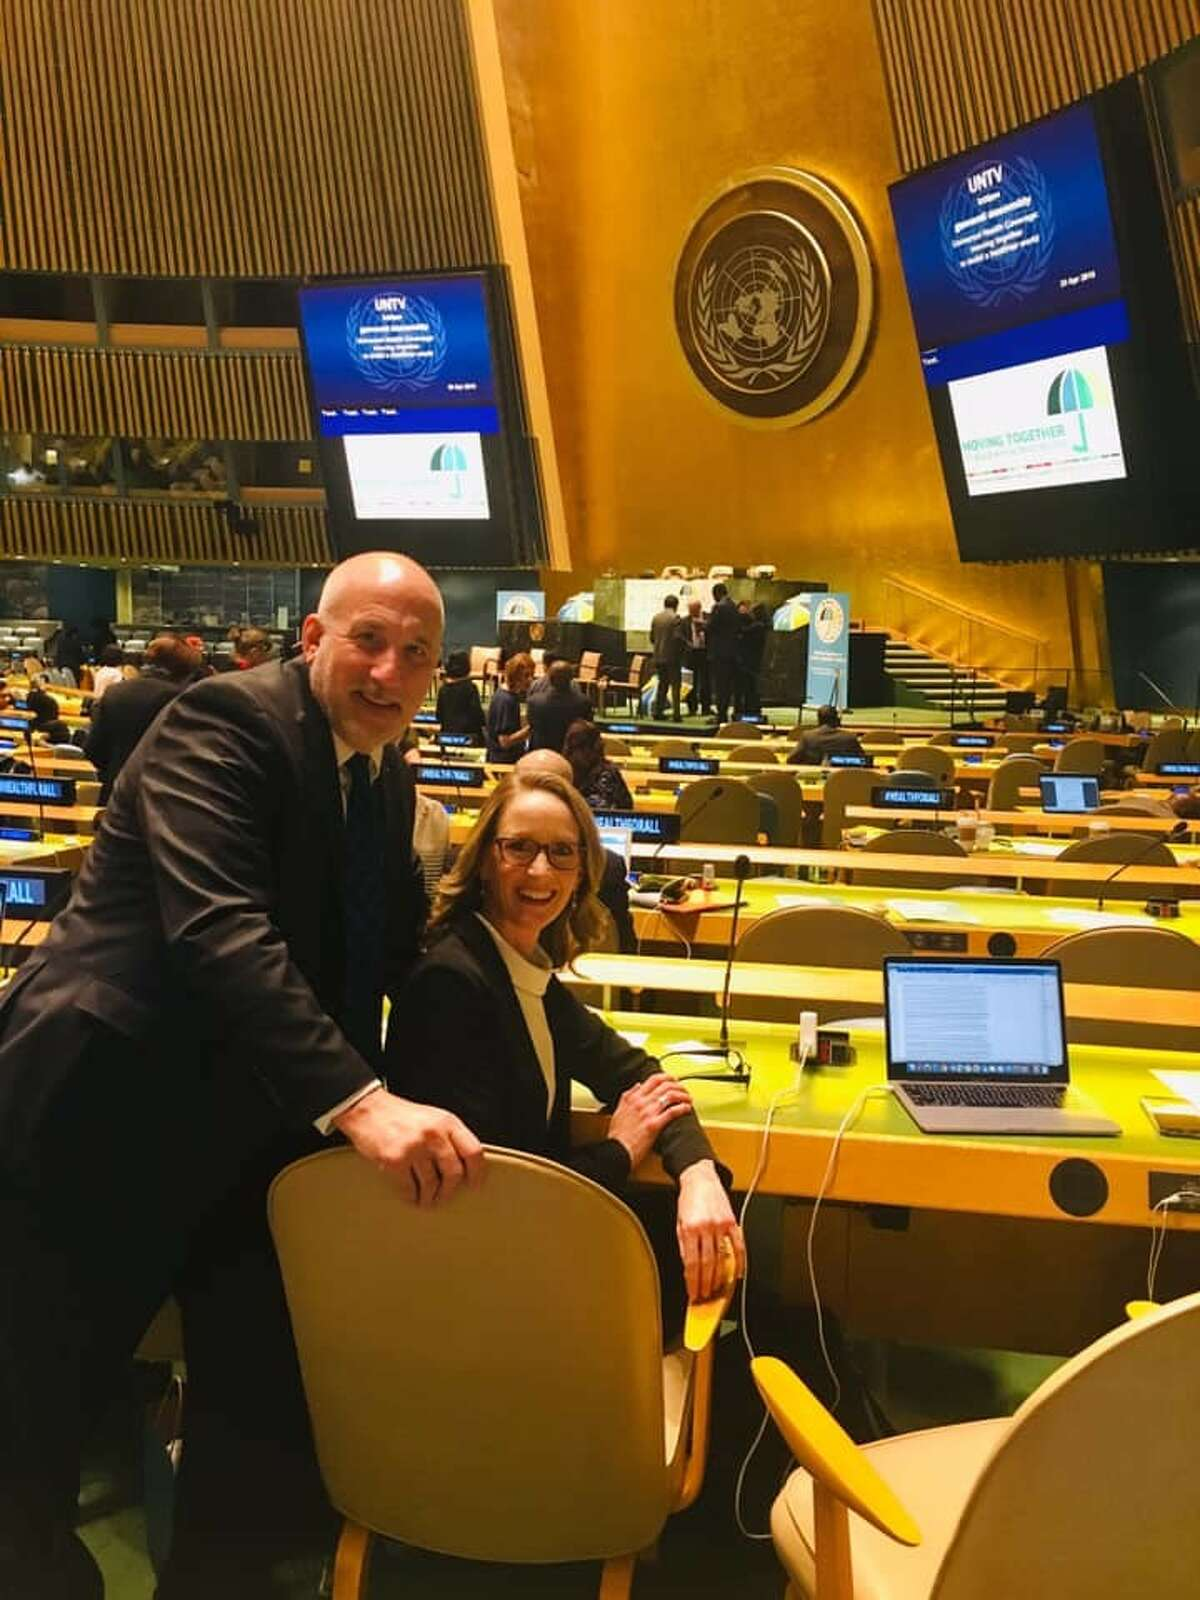 Emily Smith, Wayland alumnus and Baylor faculty member, waits her turn to speak before the 73rd Session of the United Nations General Assembly in September 2018 with pediatric surgeon Henry Rice, her mentor and colleague from Duke.